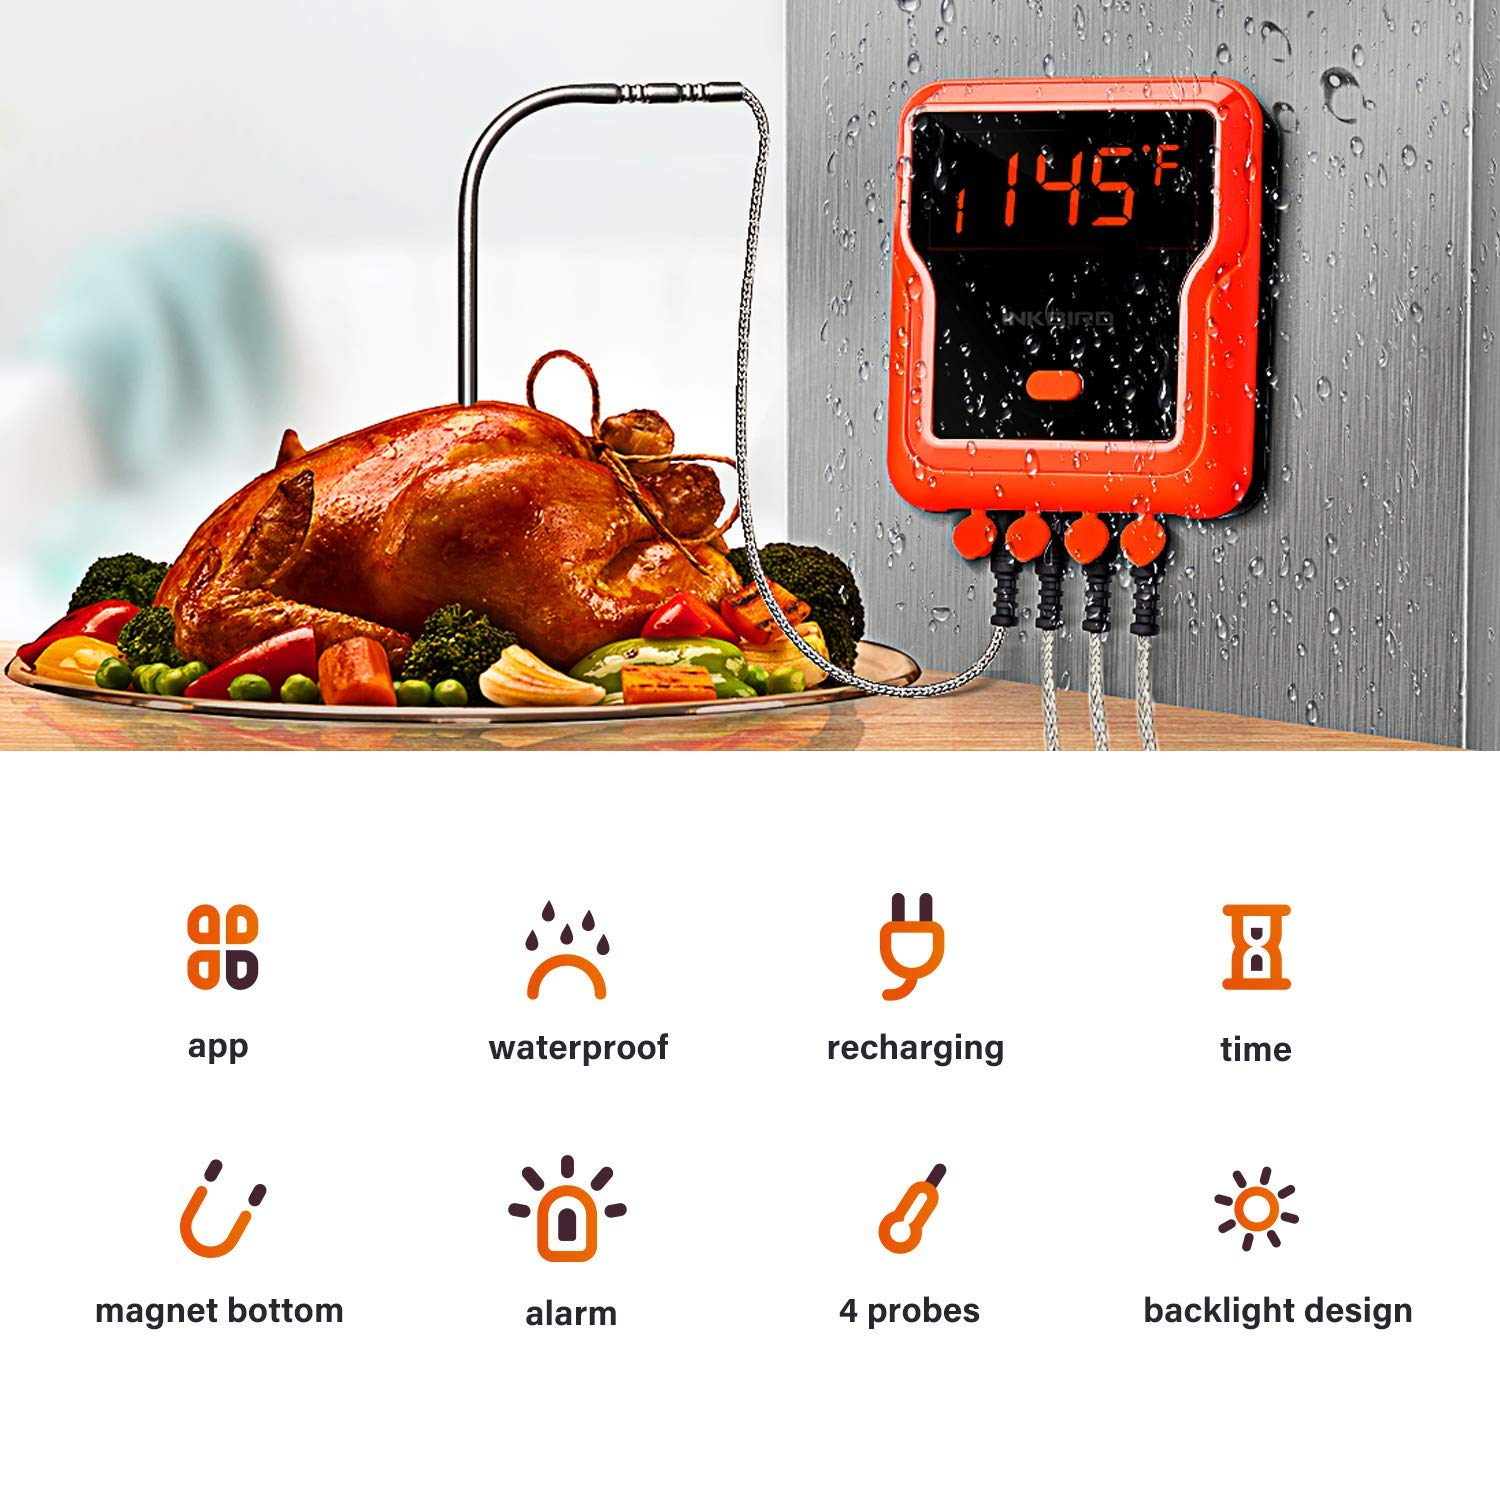 Inkbird 150ft Waterproof BBQ Grill Meat Thermometers IBT-4XP with Timer, Alarm 1000mAh Li-Battery and USB Charging Cable, Wireless Grilling Thermometer for Smoker, Barbecue,Oven, 4 Probes by Inkbird (Image #3)